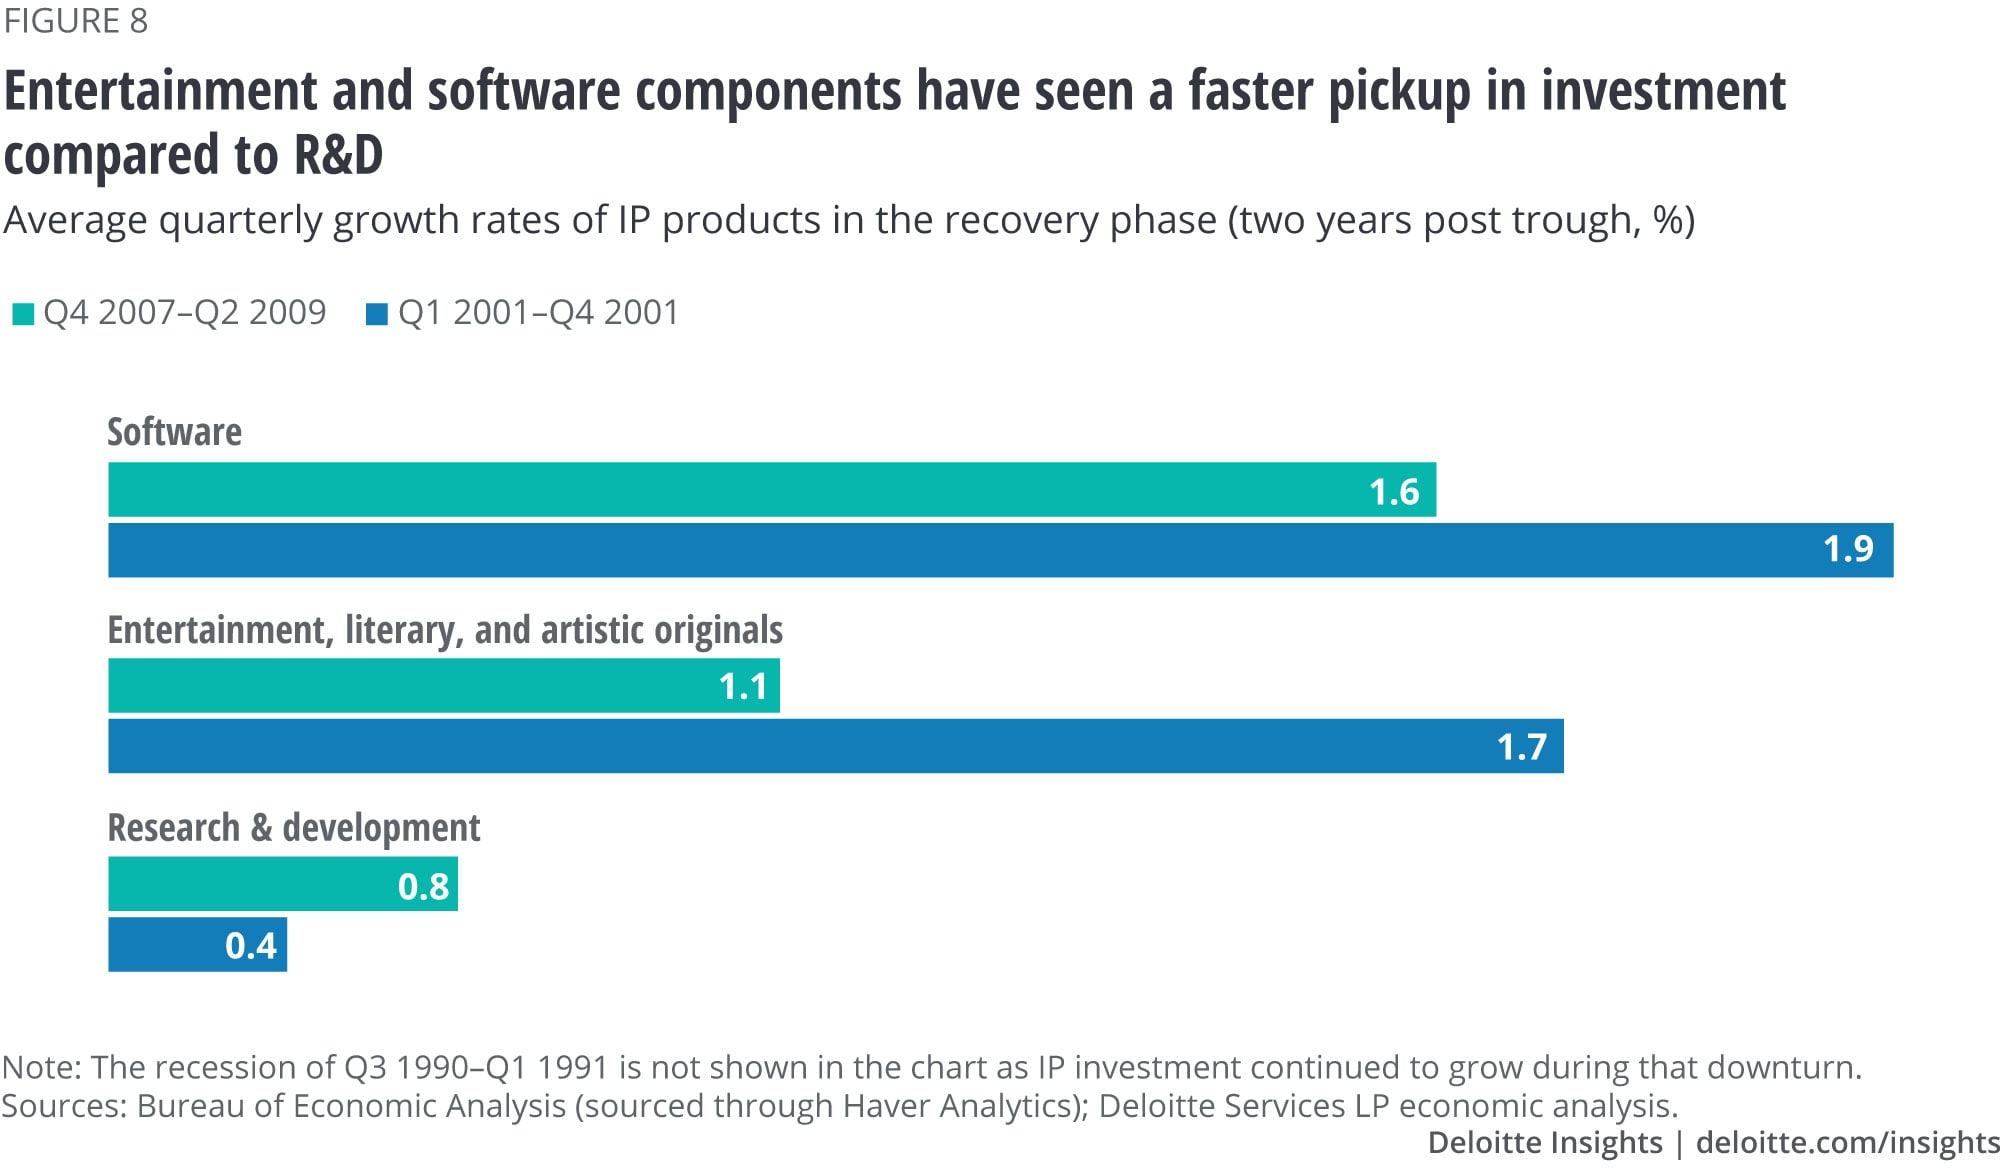 Entertainment and software components have seen a faster pickup in investment compared to research and development